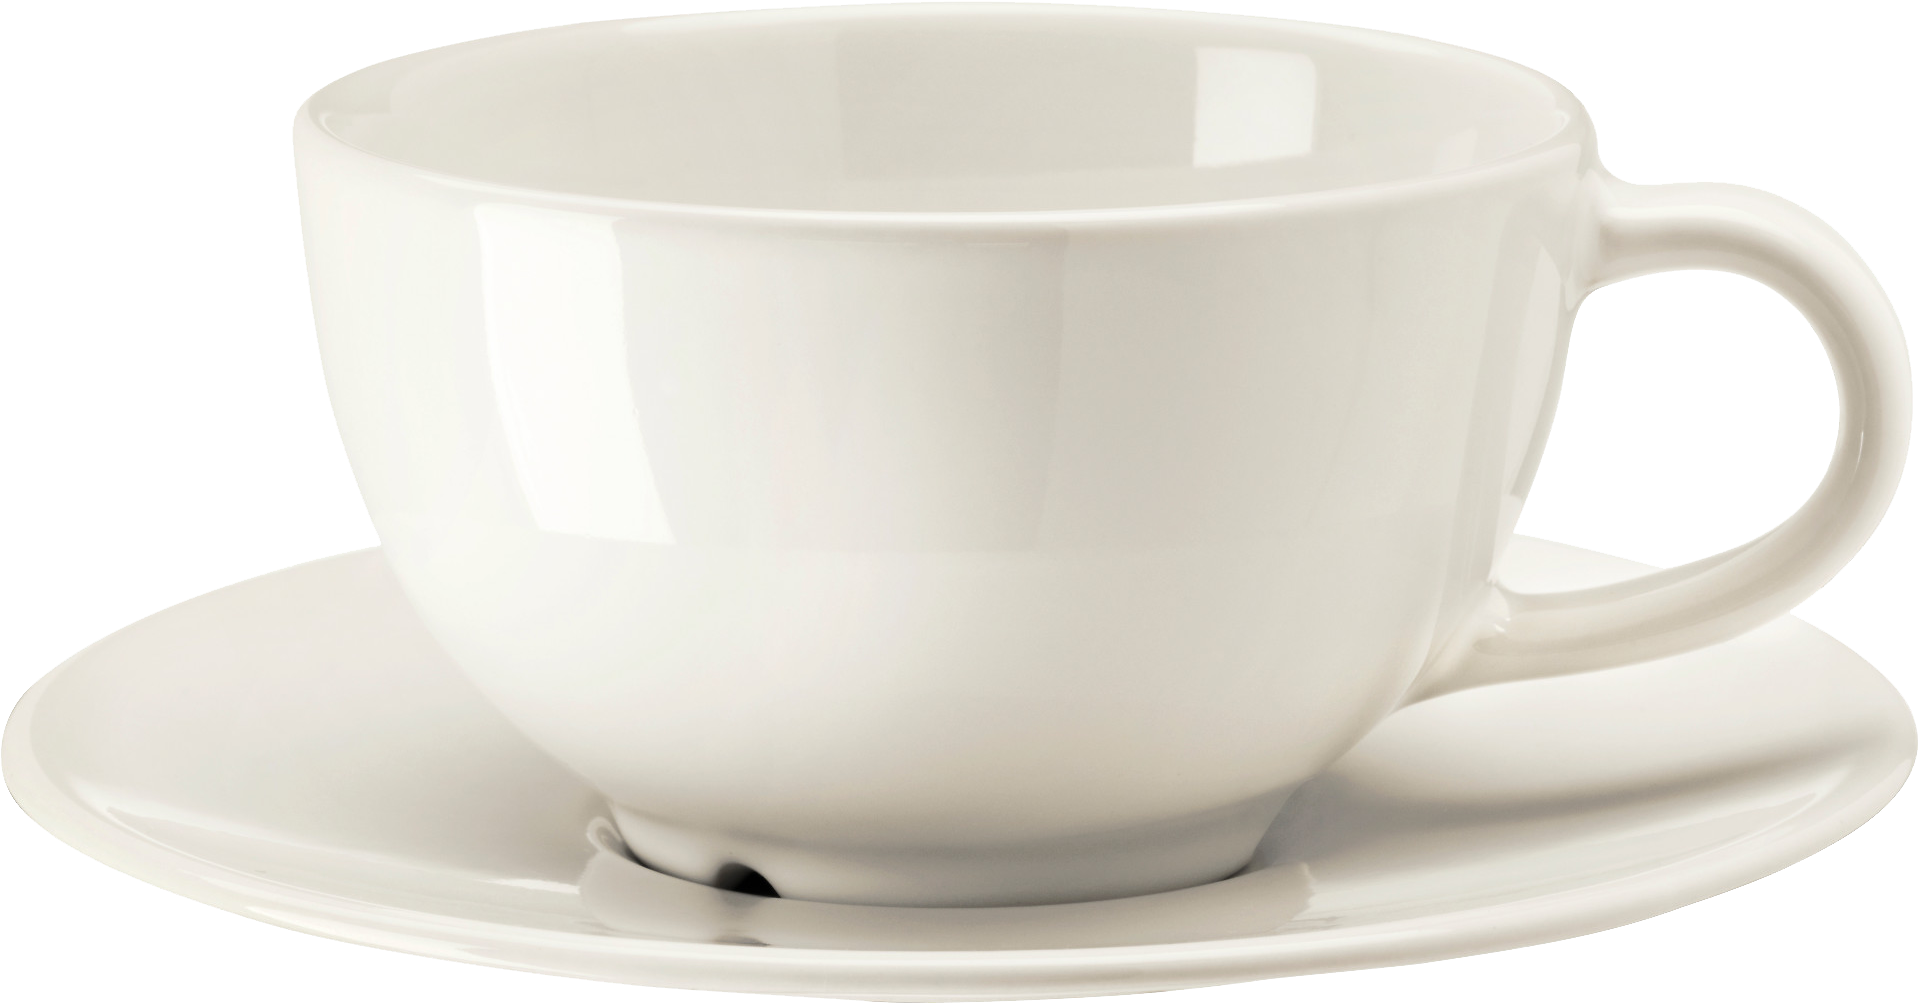 Tea Cup Png Pic Transparent Background Black Tea Cup Png Full Size Png Download Seekpng